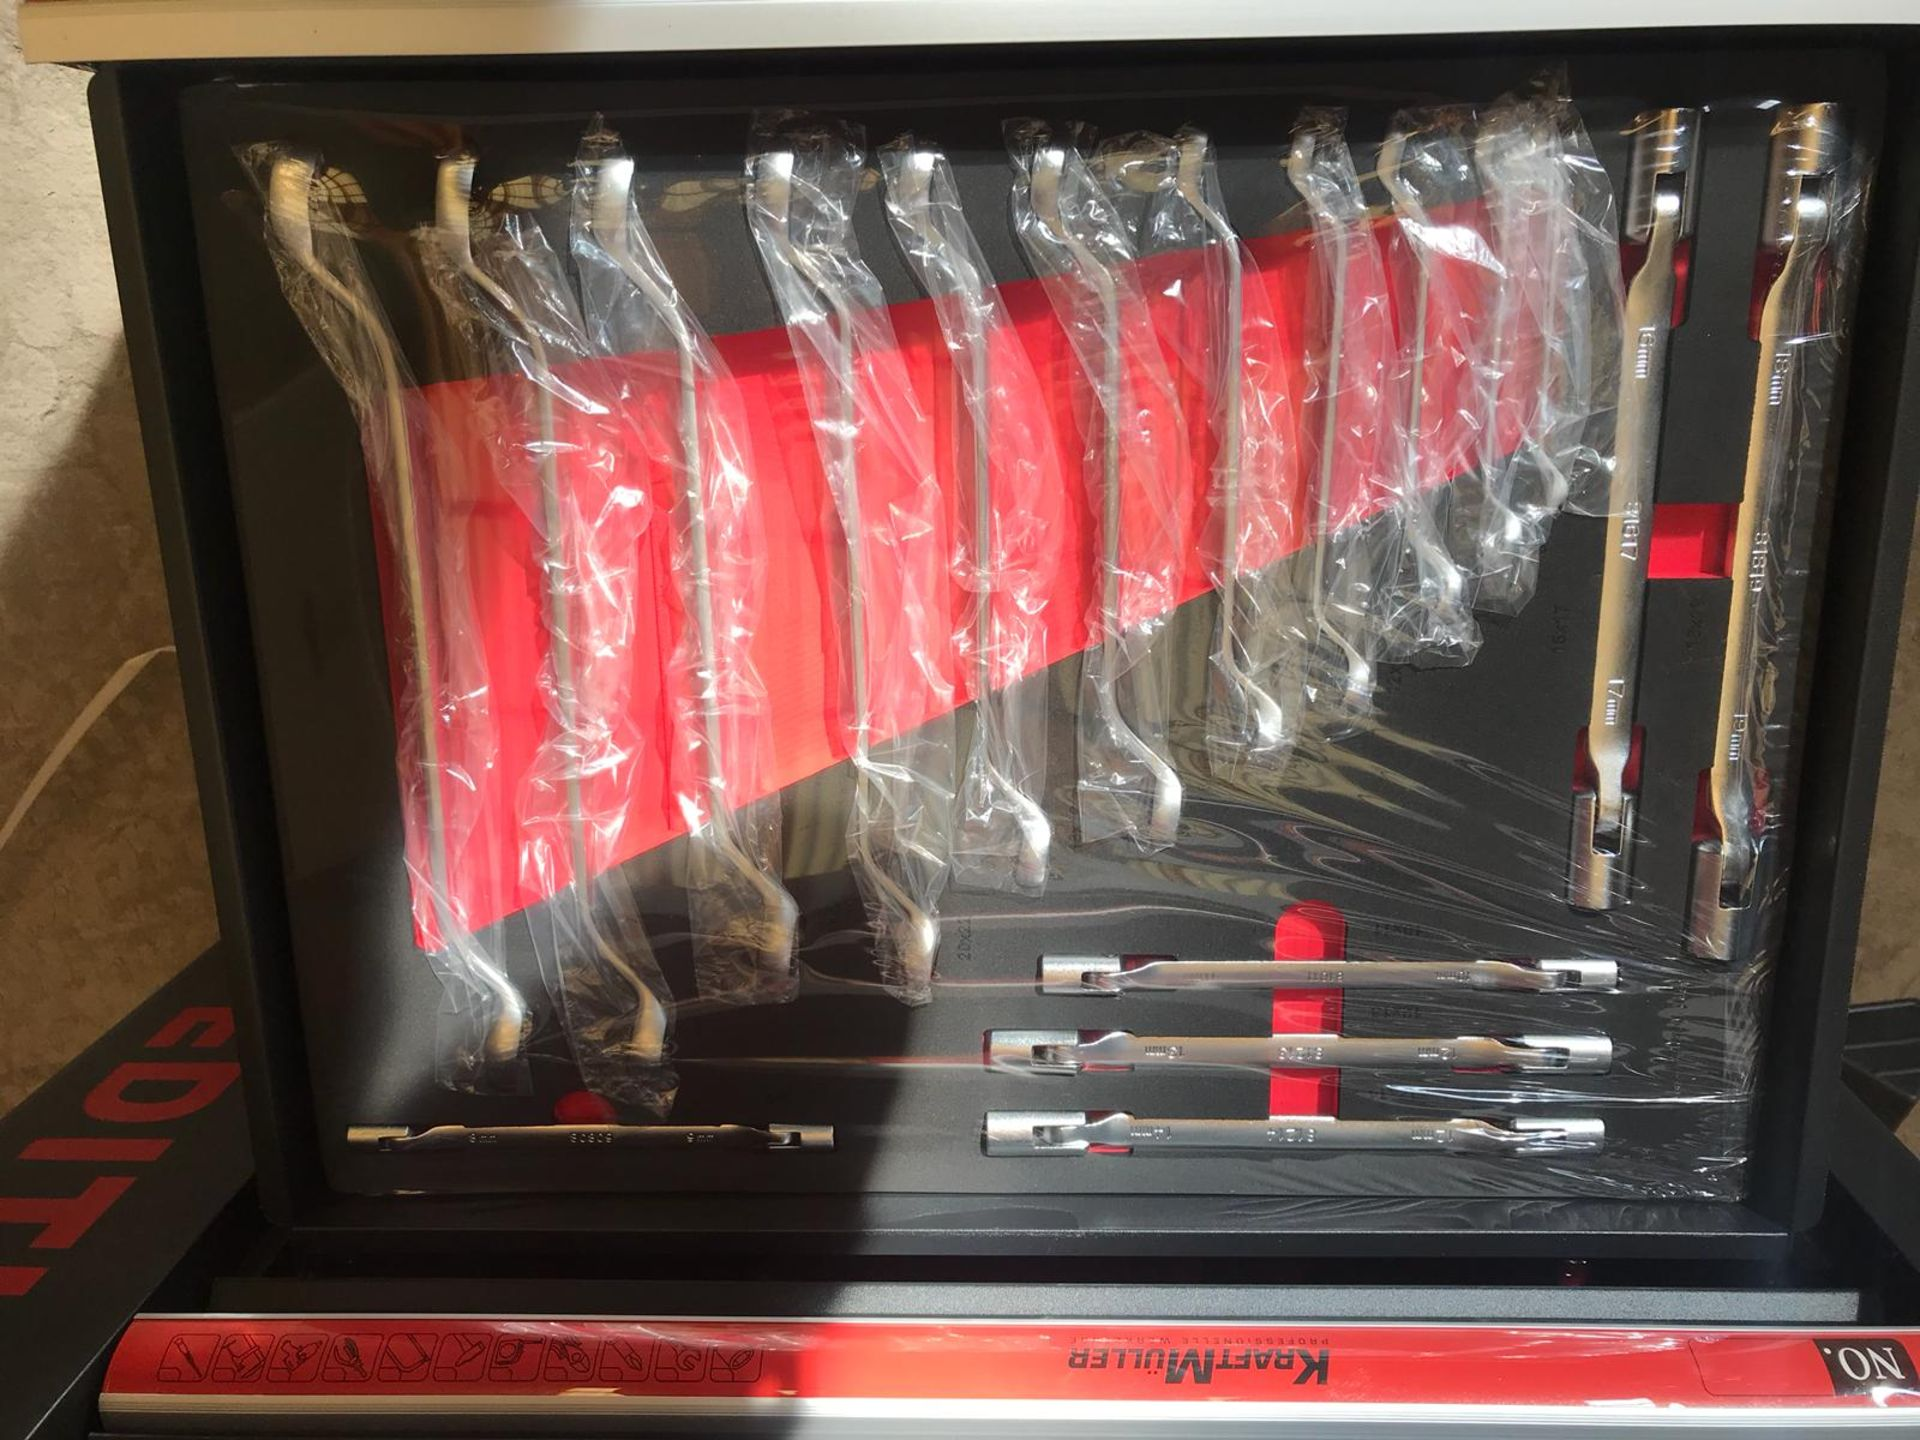 Lot 31651 - V Brand New Seven Drawer Locking Garage Tool Cabinet With Lockable Casters-Seven EVA Drawers of